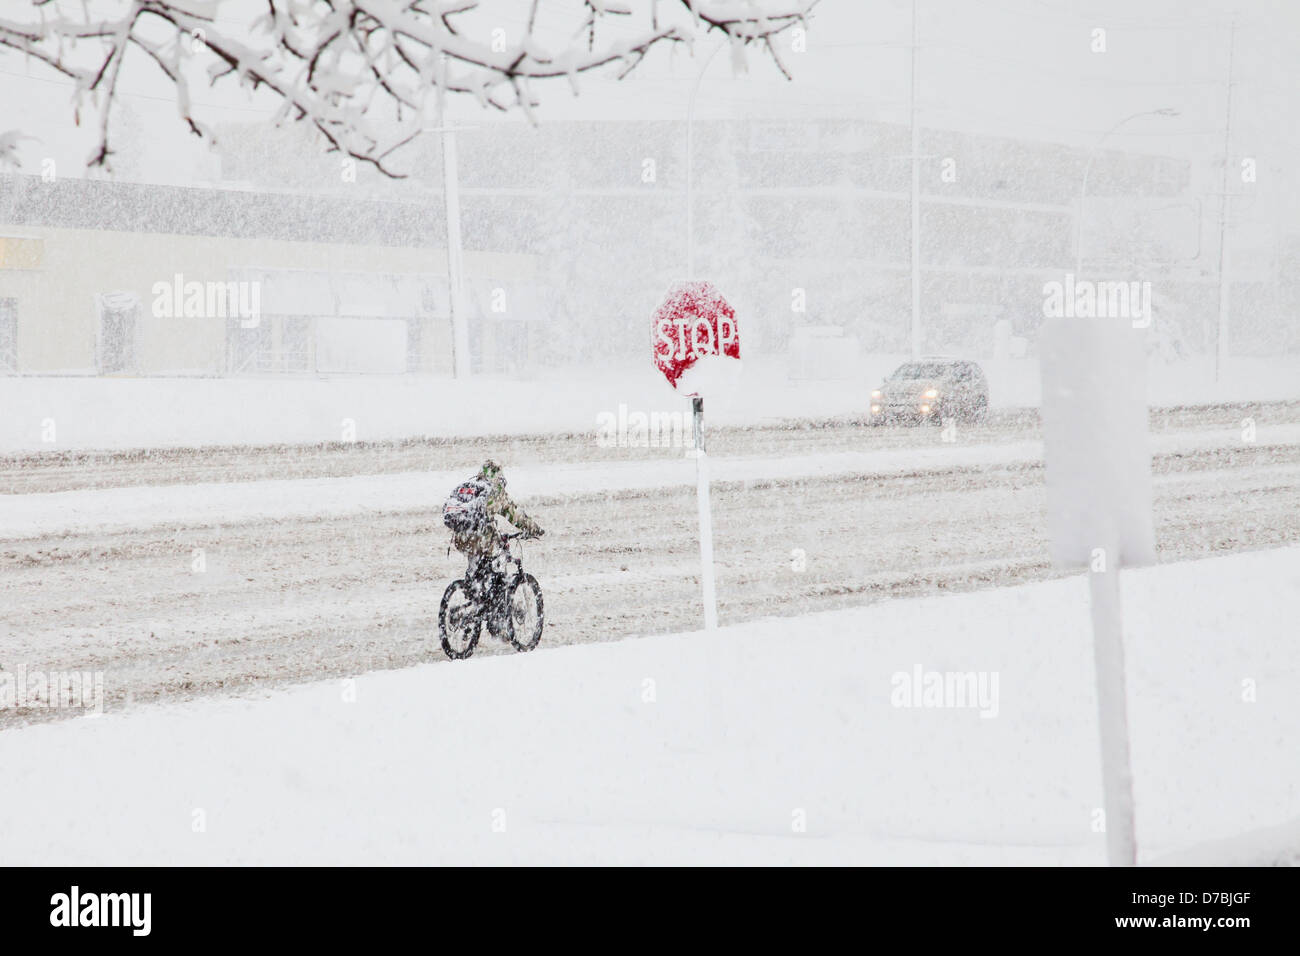 Cyclist riding in the snow during a spring snow storm;Edmonton alberta canada - Stock Image